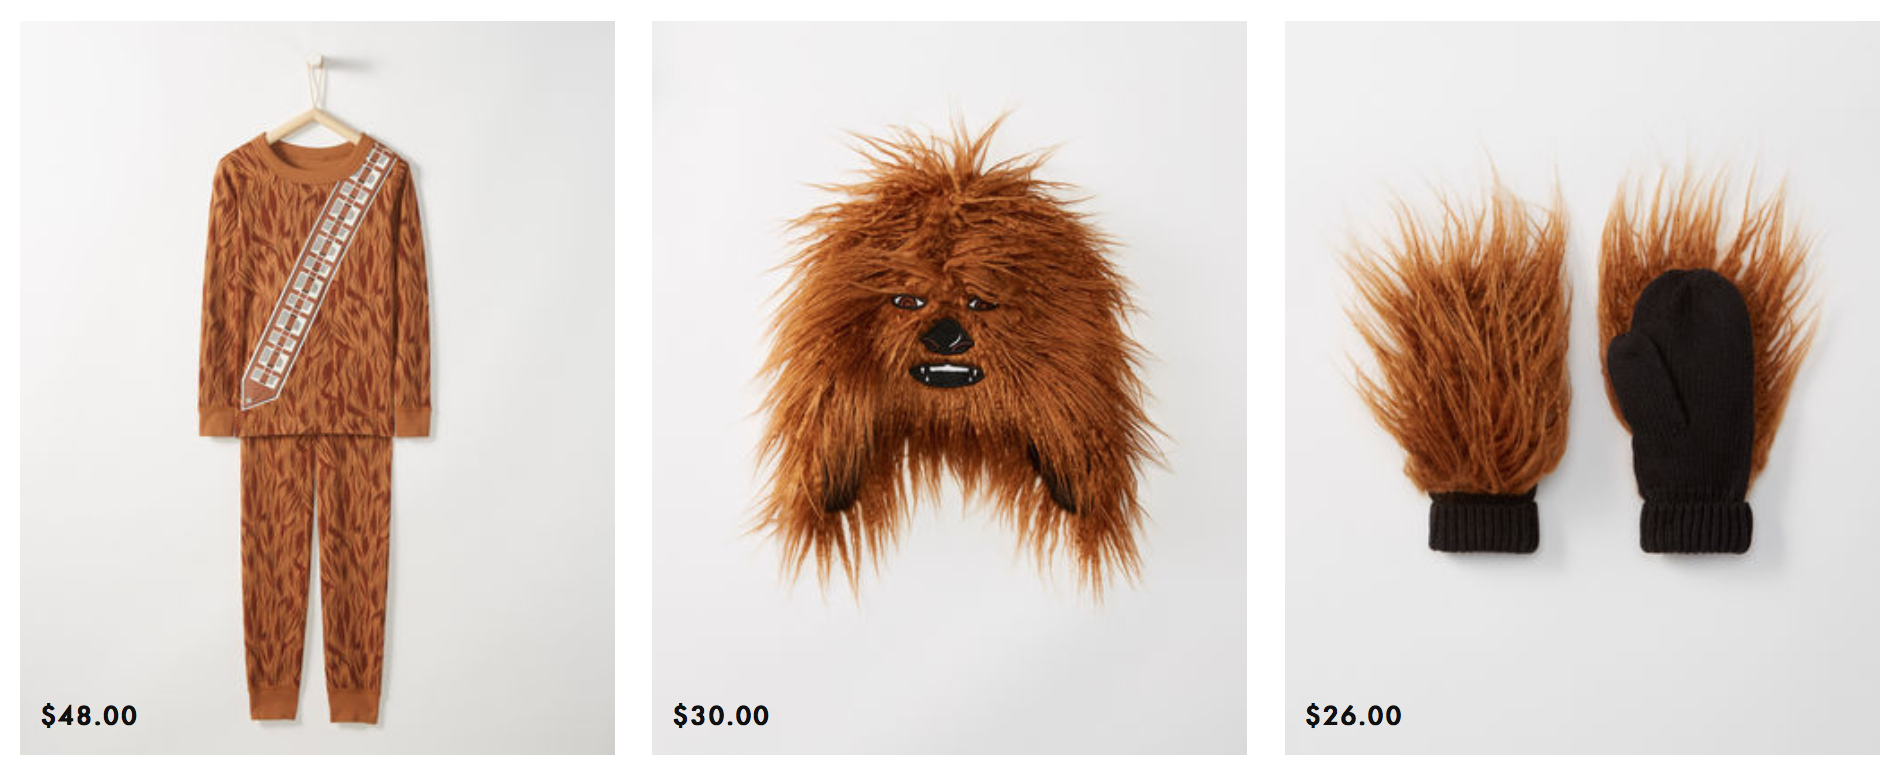 Chewbacca by Hanna Andersson